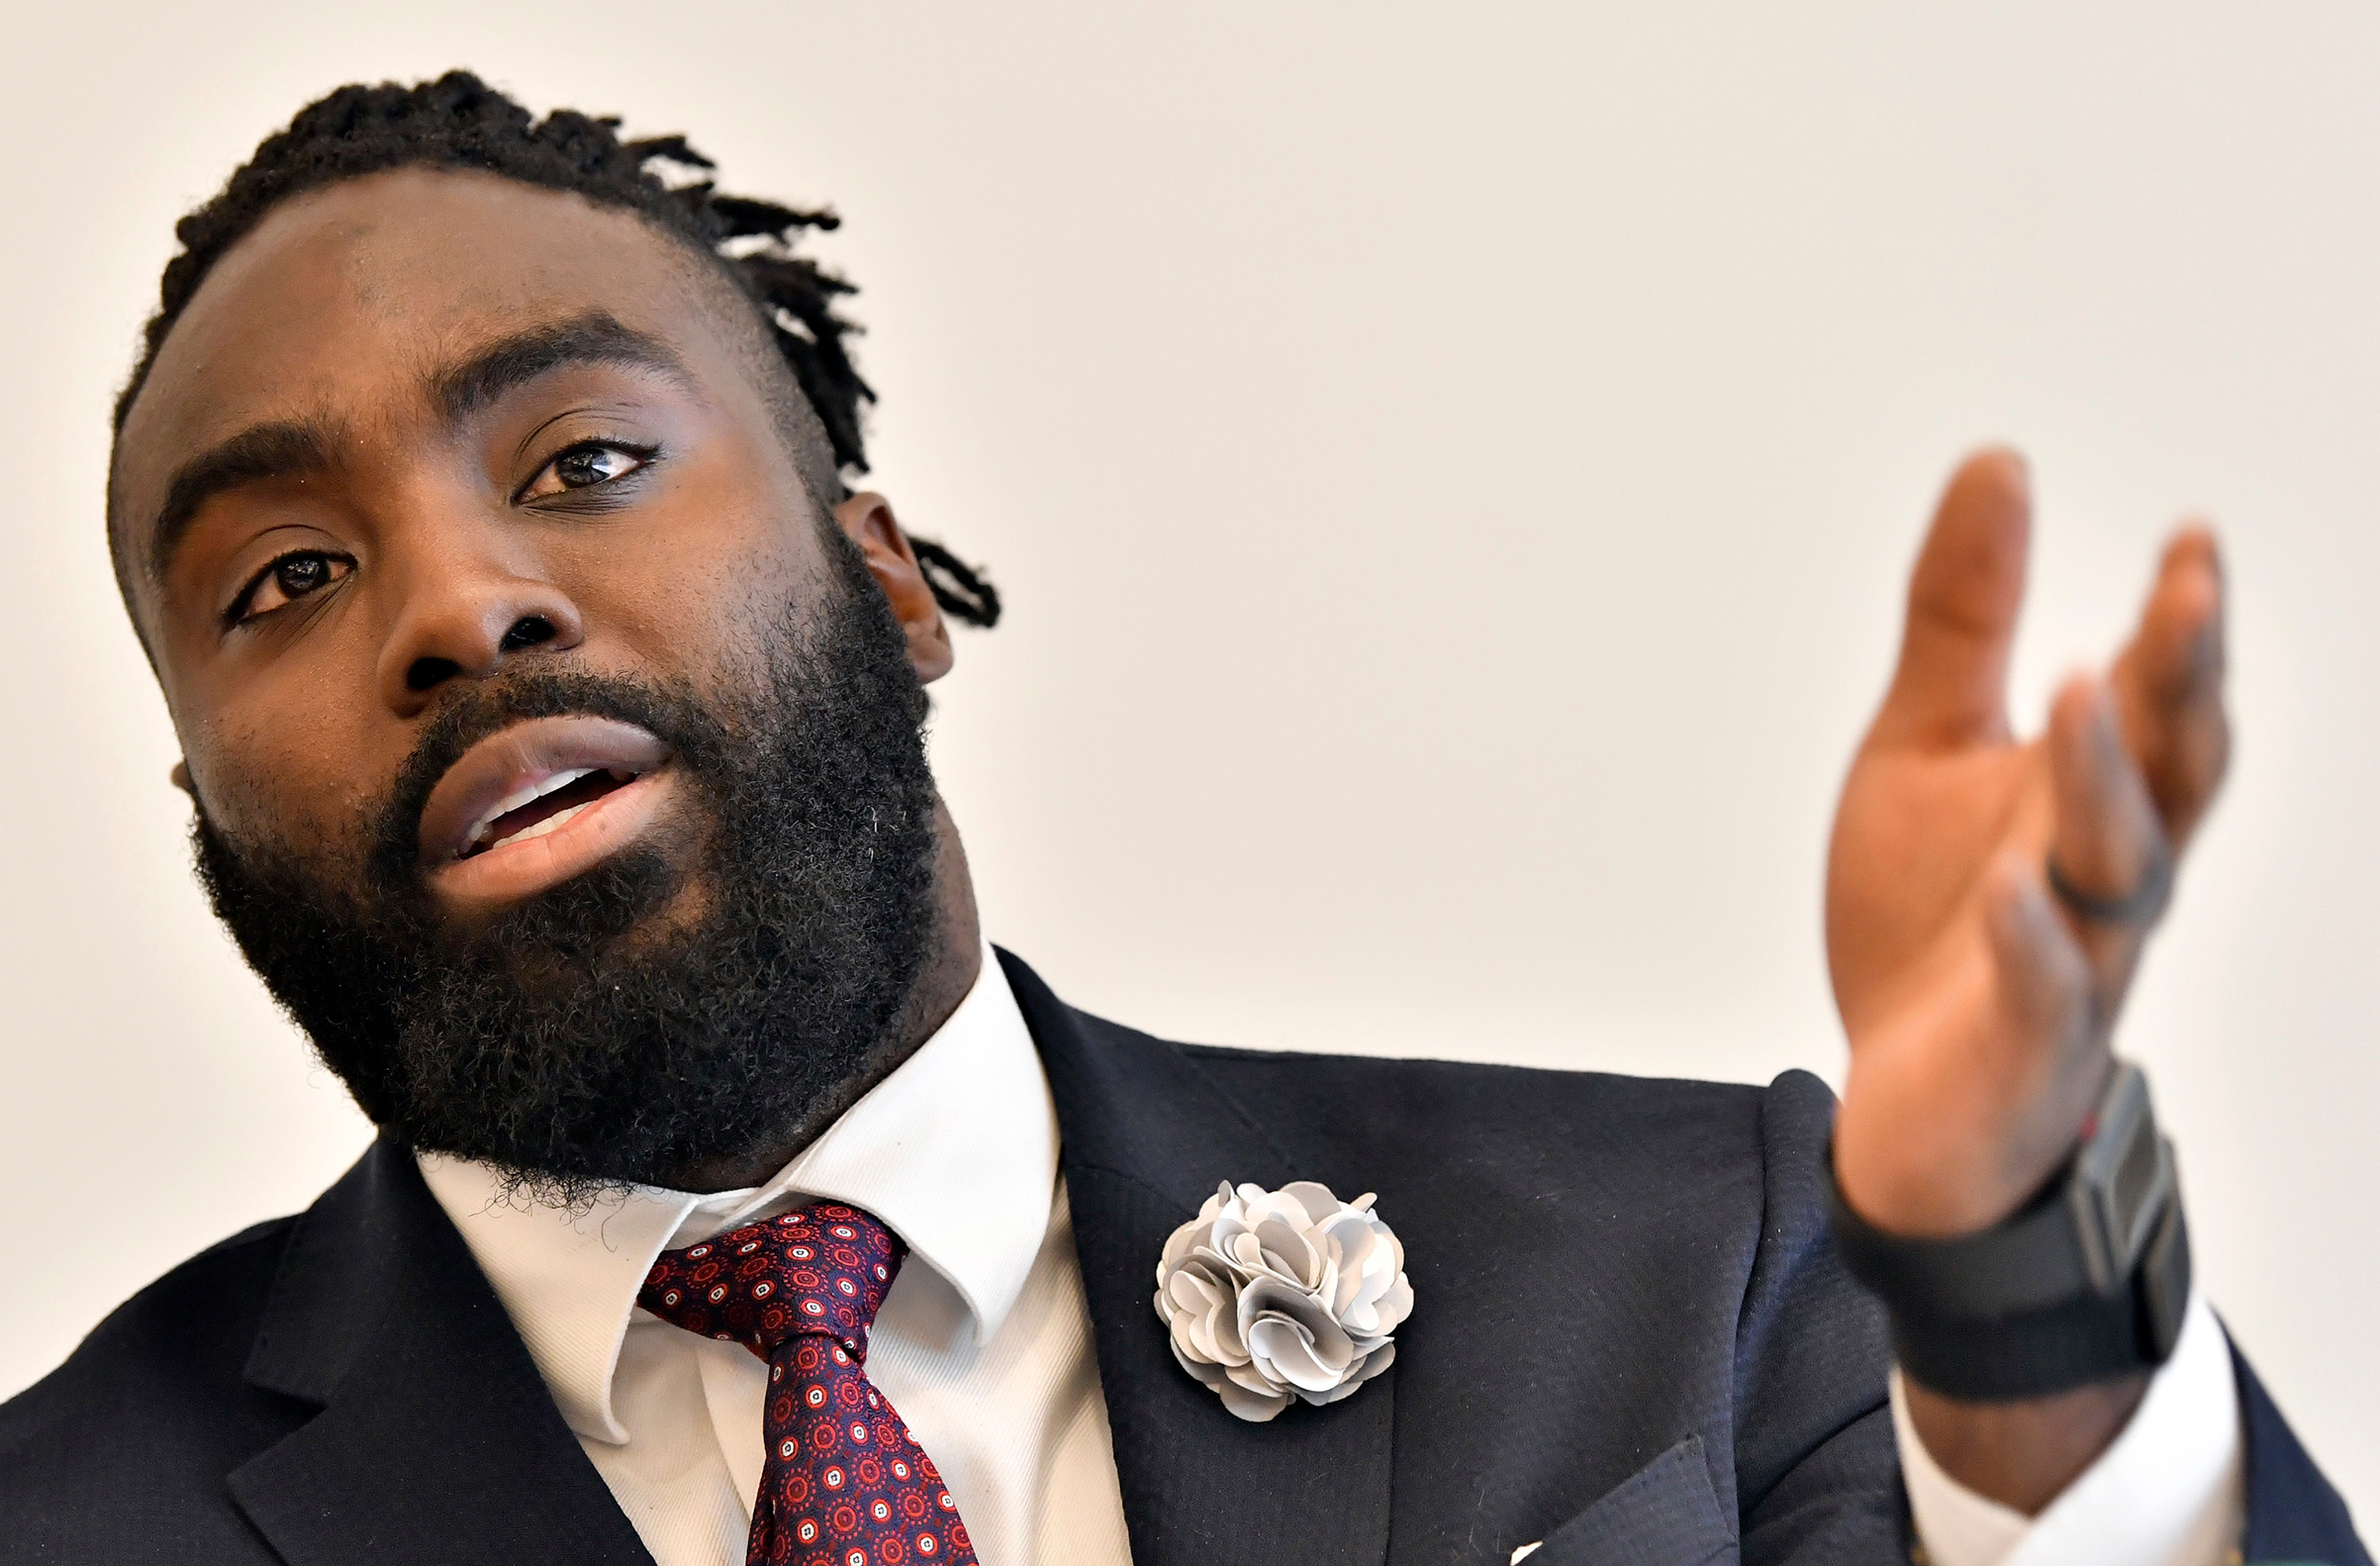 New Orleans Saints' Demario Davis discusses criminal justice issues with other current and former NFL football players at Harvard Law School, in Cambridge, Mass. on March 23, 2018.